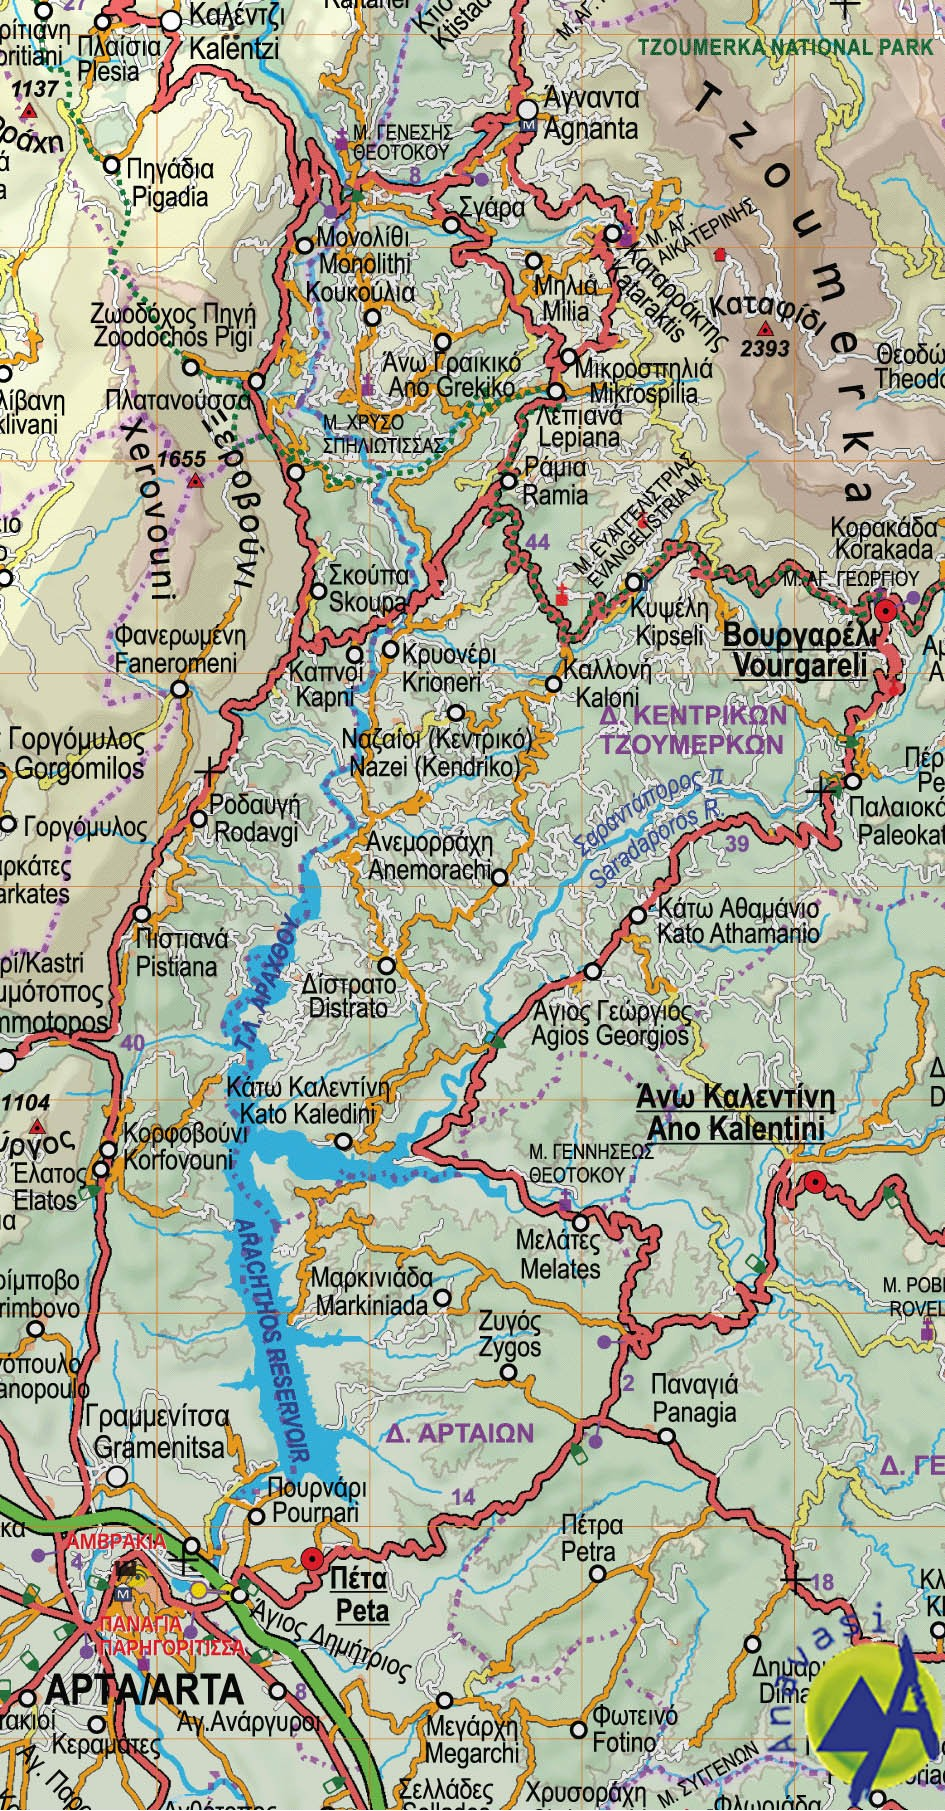 Central Greece, Epirus, Thessaly • Road map 1:230000